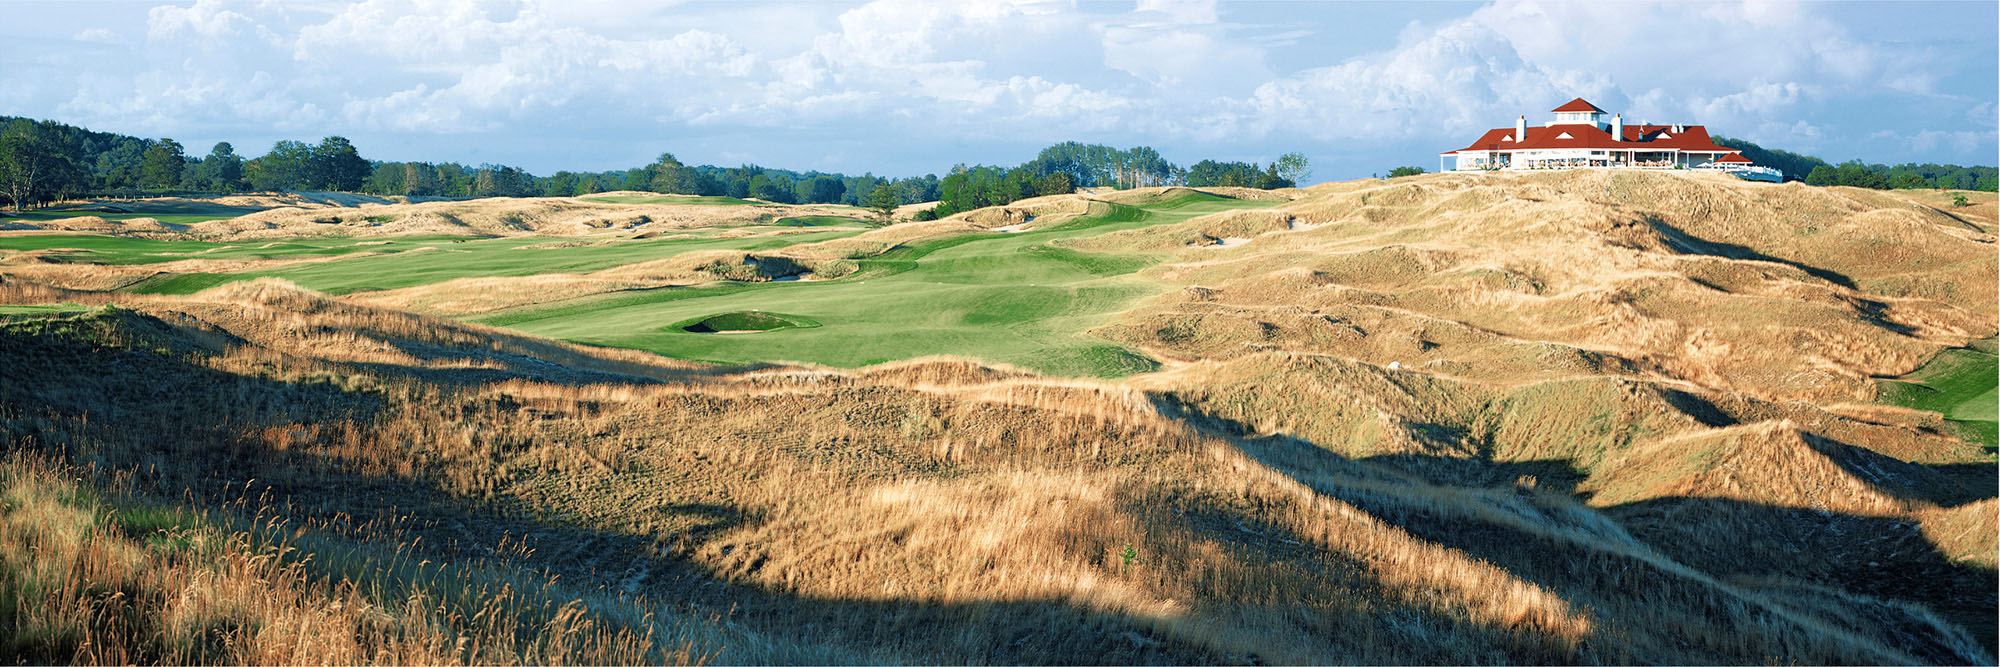 Golf Course Image - Arcadia Bluffs No. 18